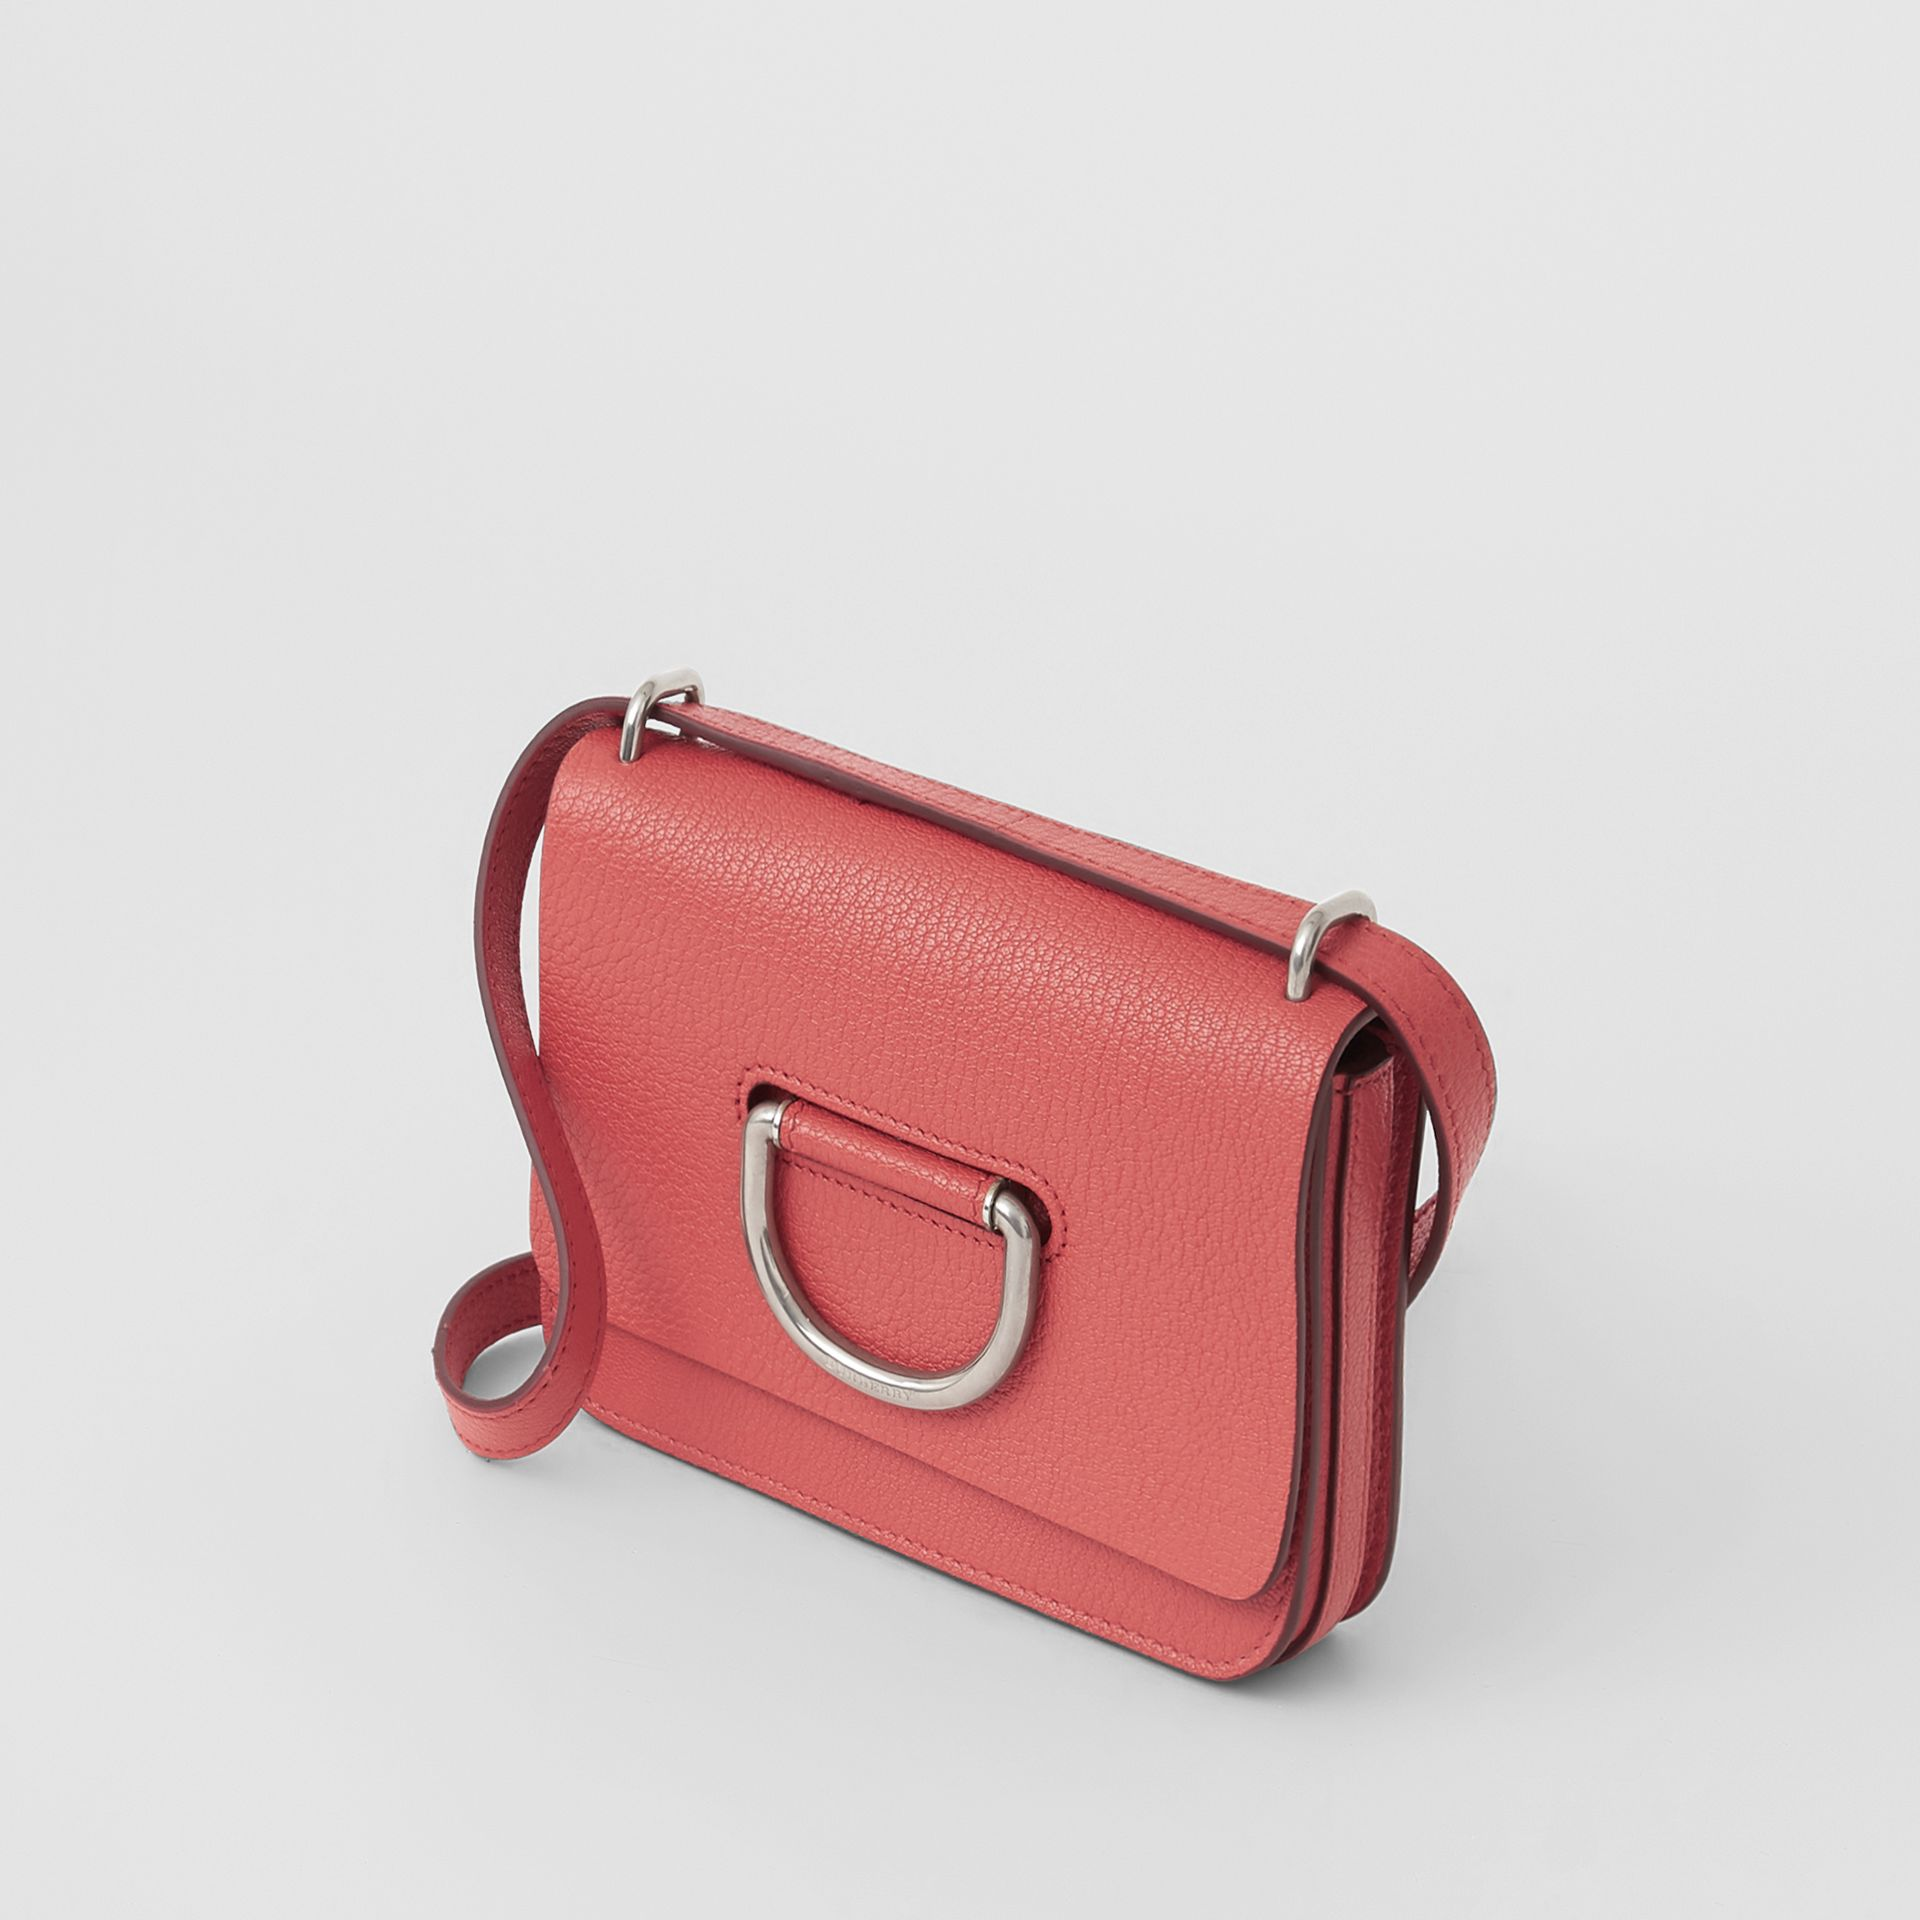 The Mini Leather D-ring Bag in Bright Coral Pink - Women | Burberry - gallery image 4